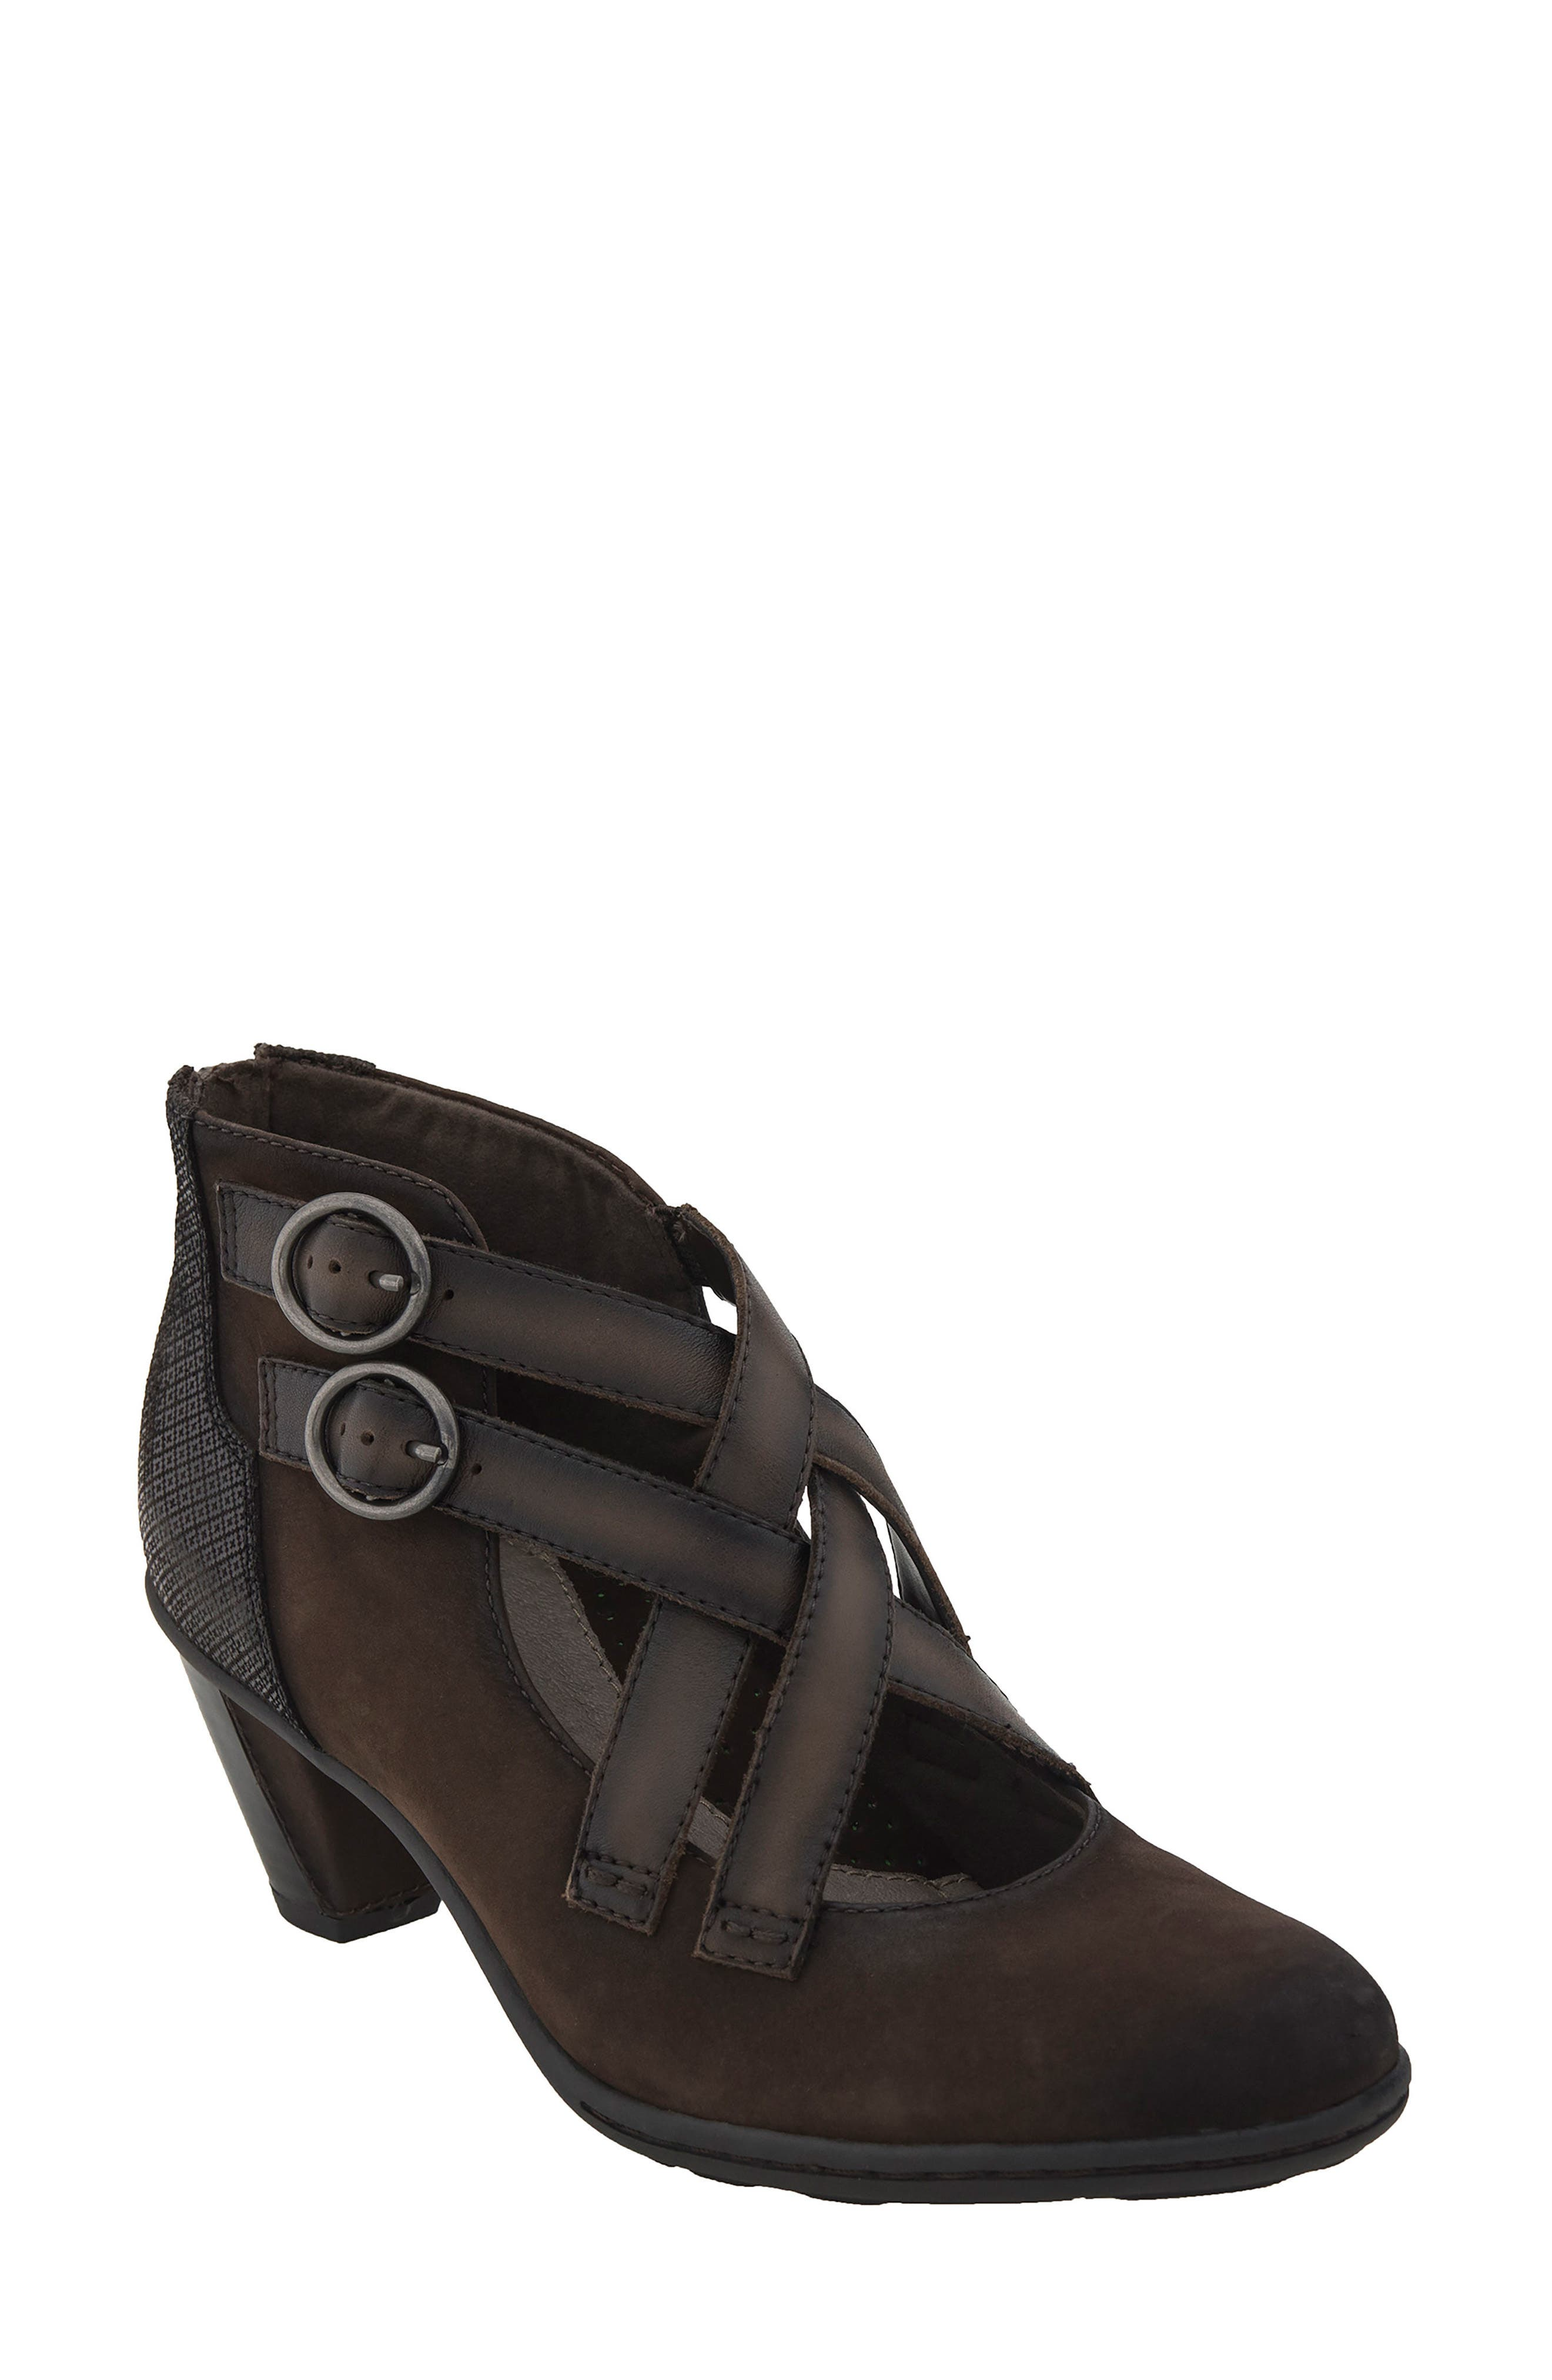 Alternate Image 1 Selected - Earth® 'Amber' Buckle Bootie (Women)